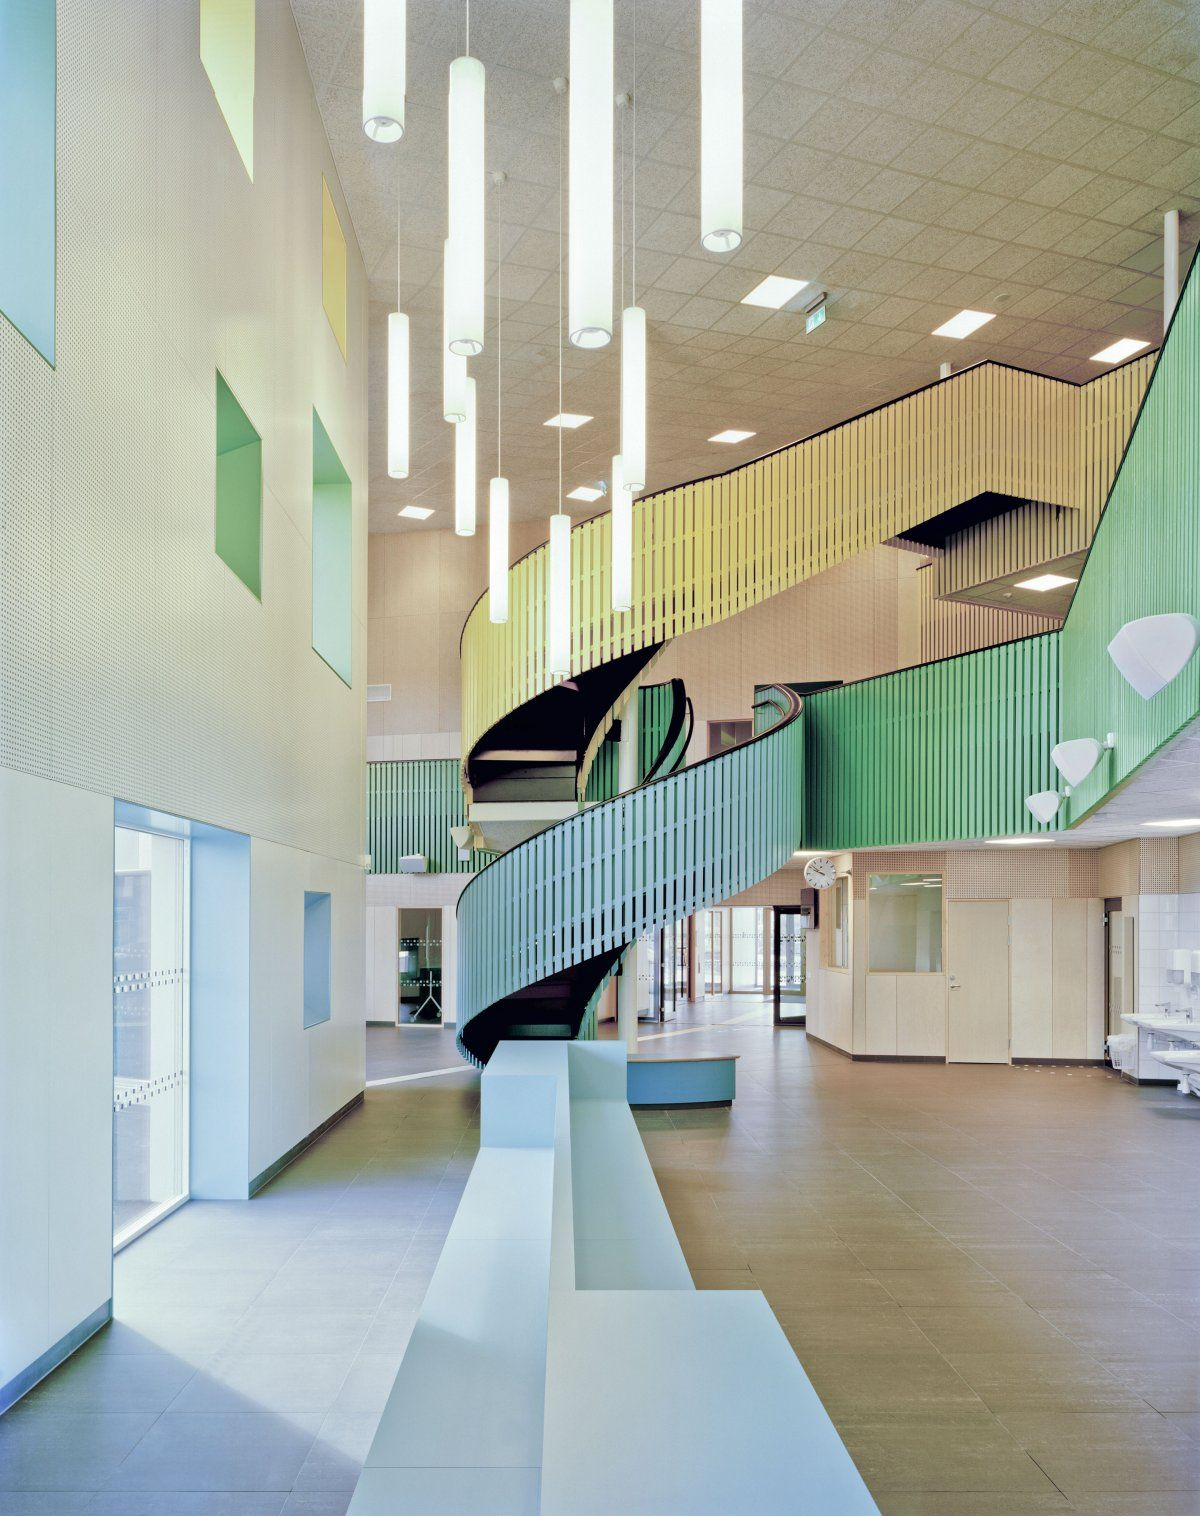 of the most beautiful schools around world education architecturestairs also best architecture interiors images in diy ideas for rh pinterest